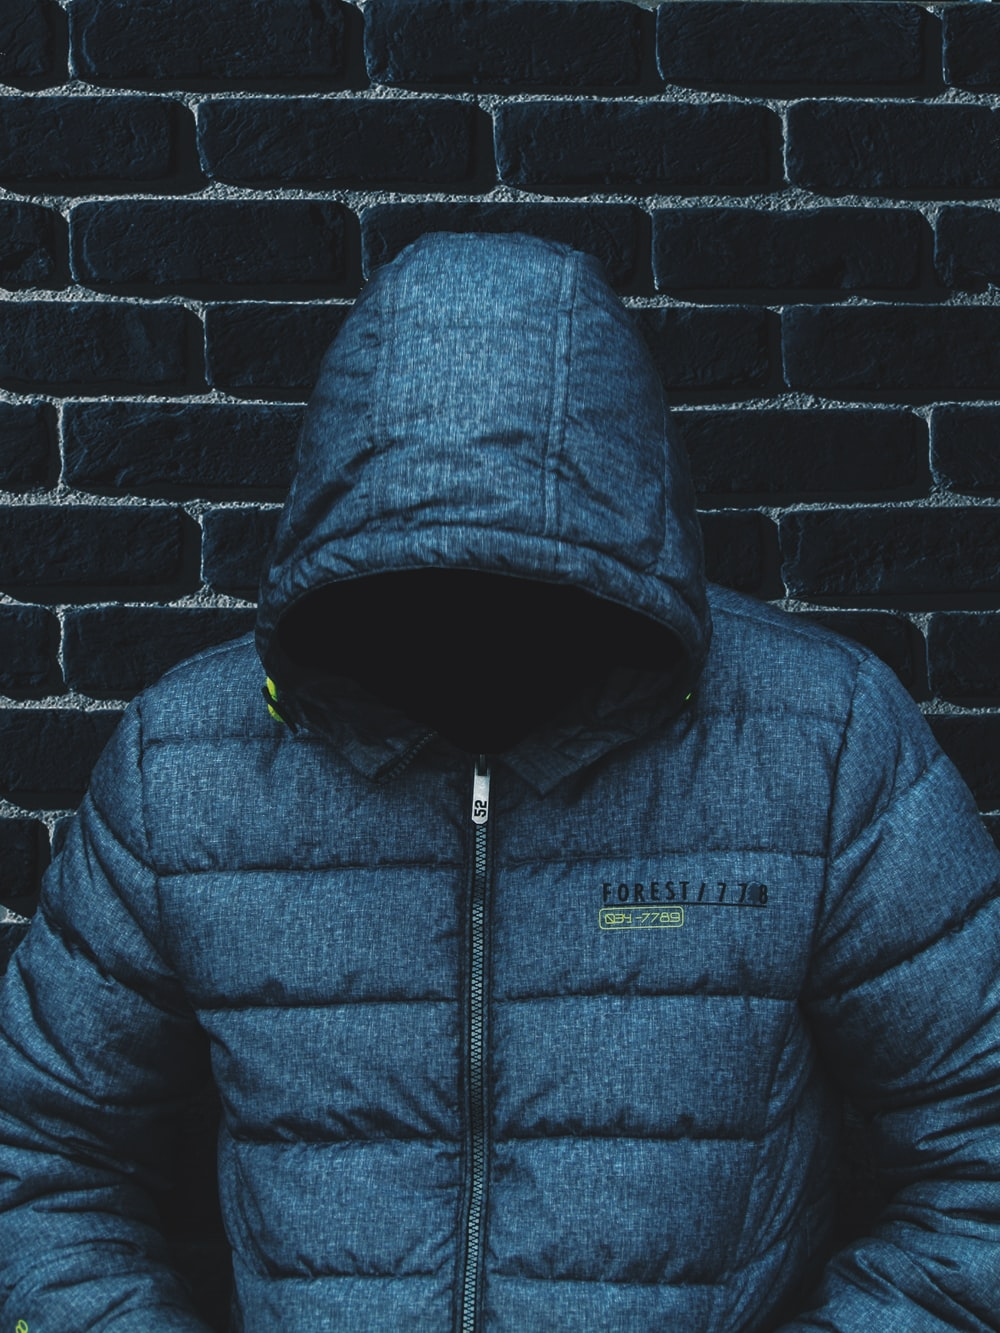 person with head down wearing blue zip-up jacket leaning on wall